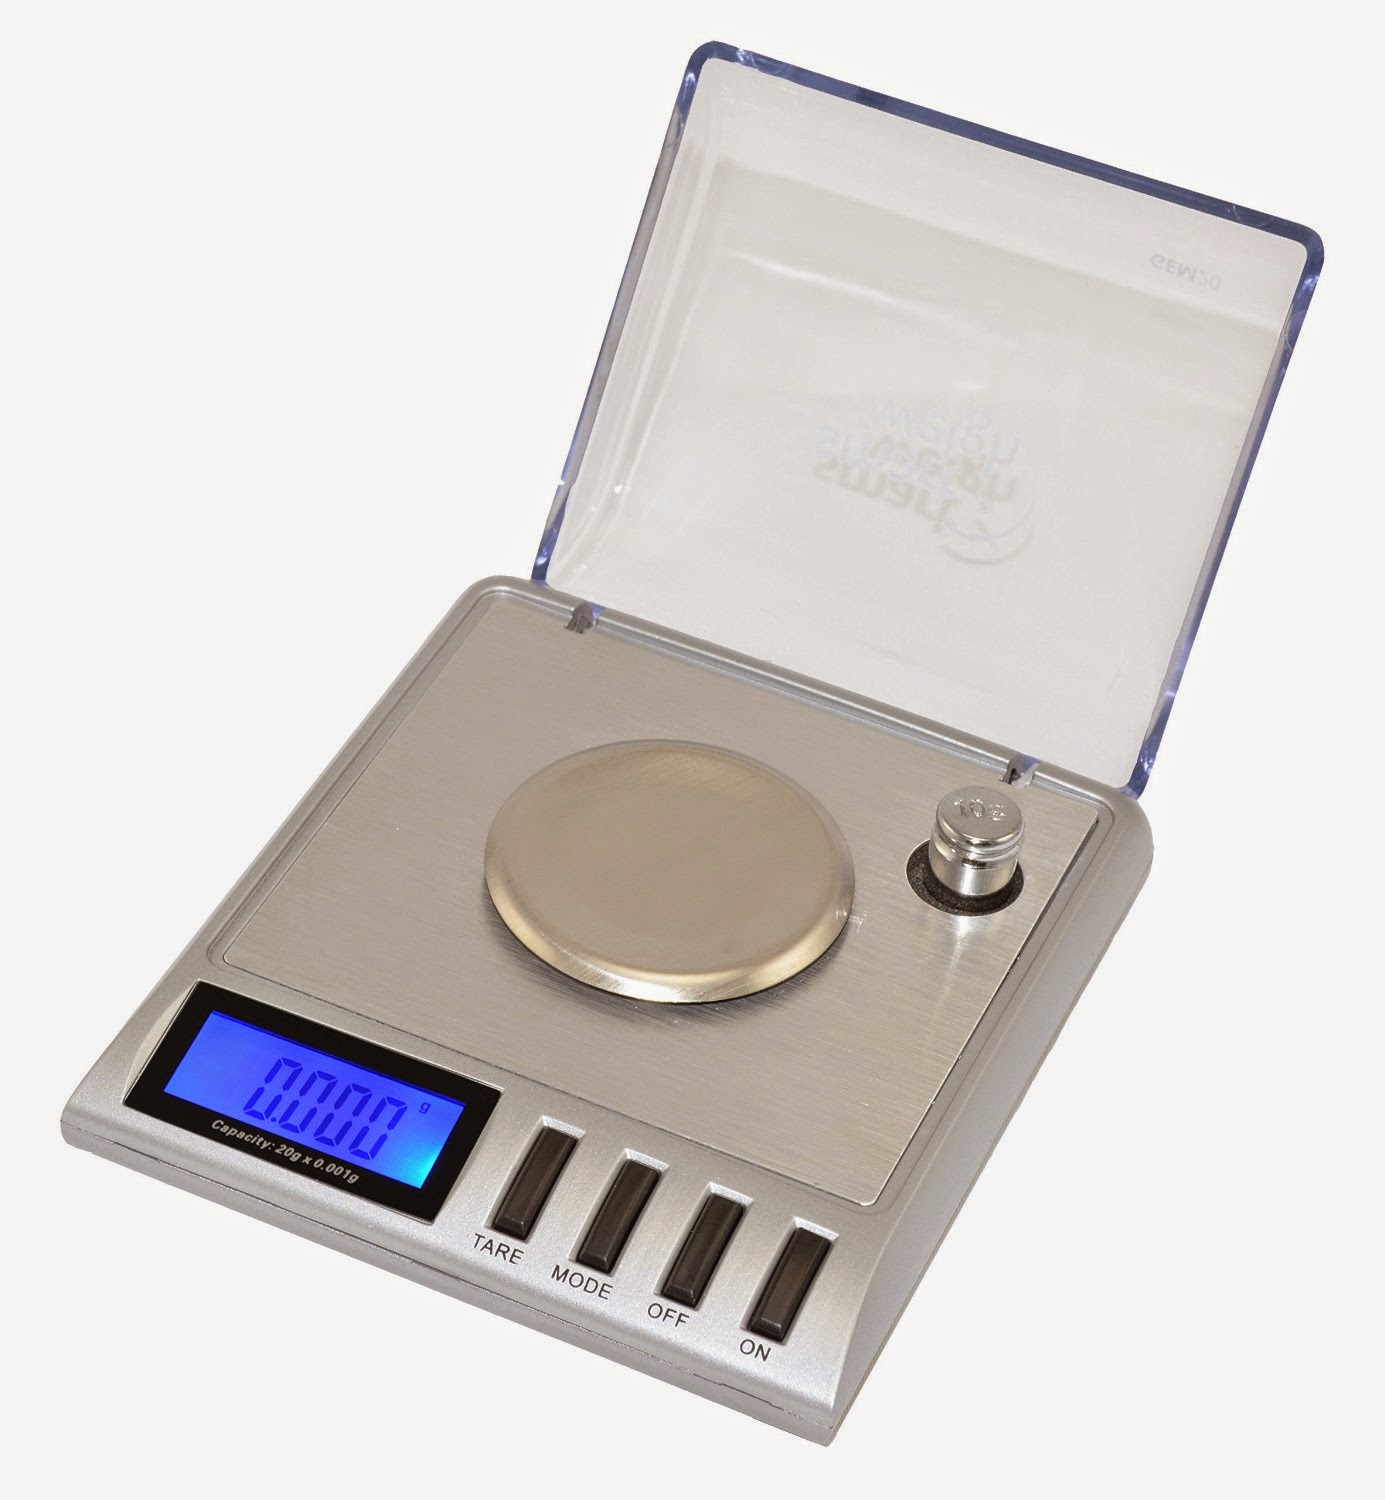 http://www.amazon.com/smart-weigh-gem20-precision-milligram/dp/b00eshdgoi/ref=sr_1_1?ie=utf8&qid=1421963338&sr=8-1&keywords=gem20